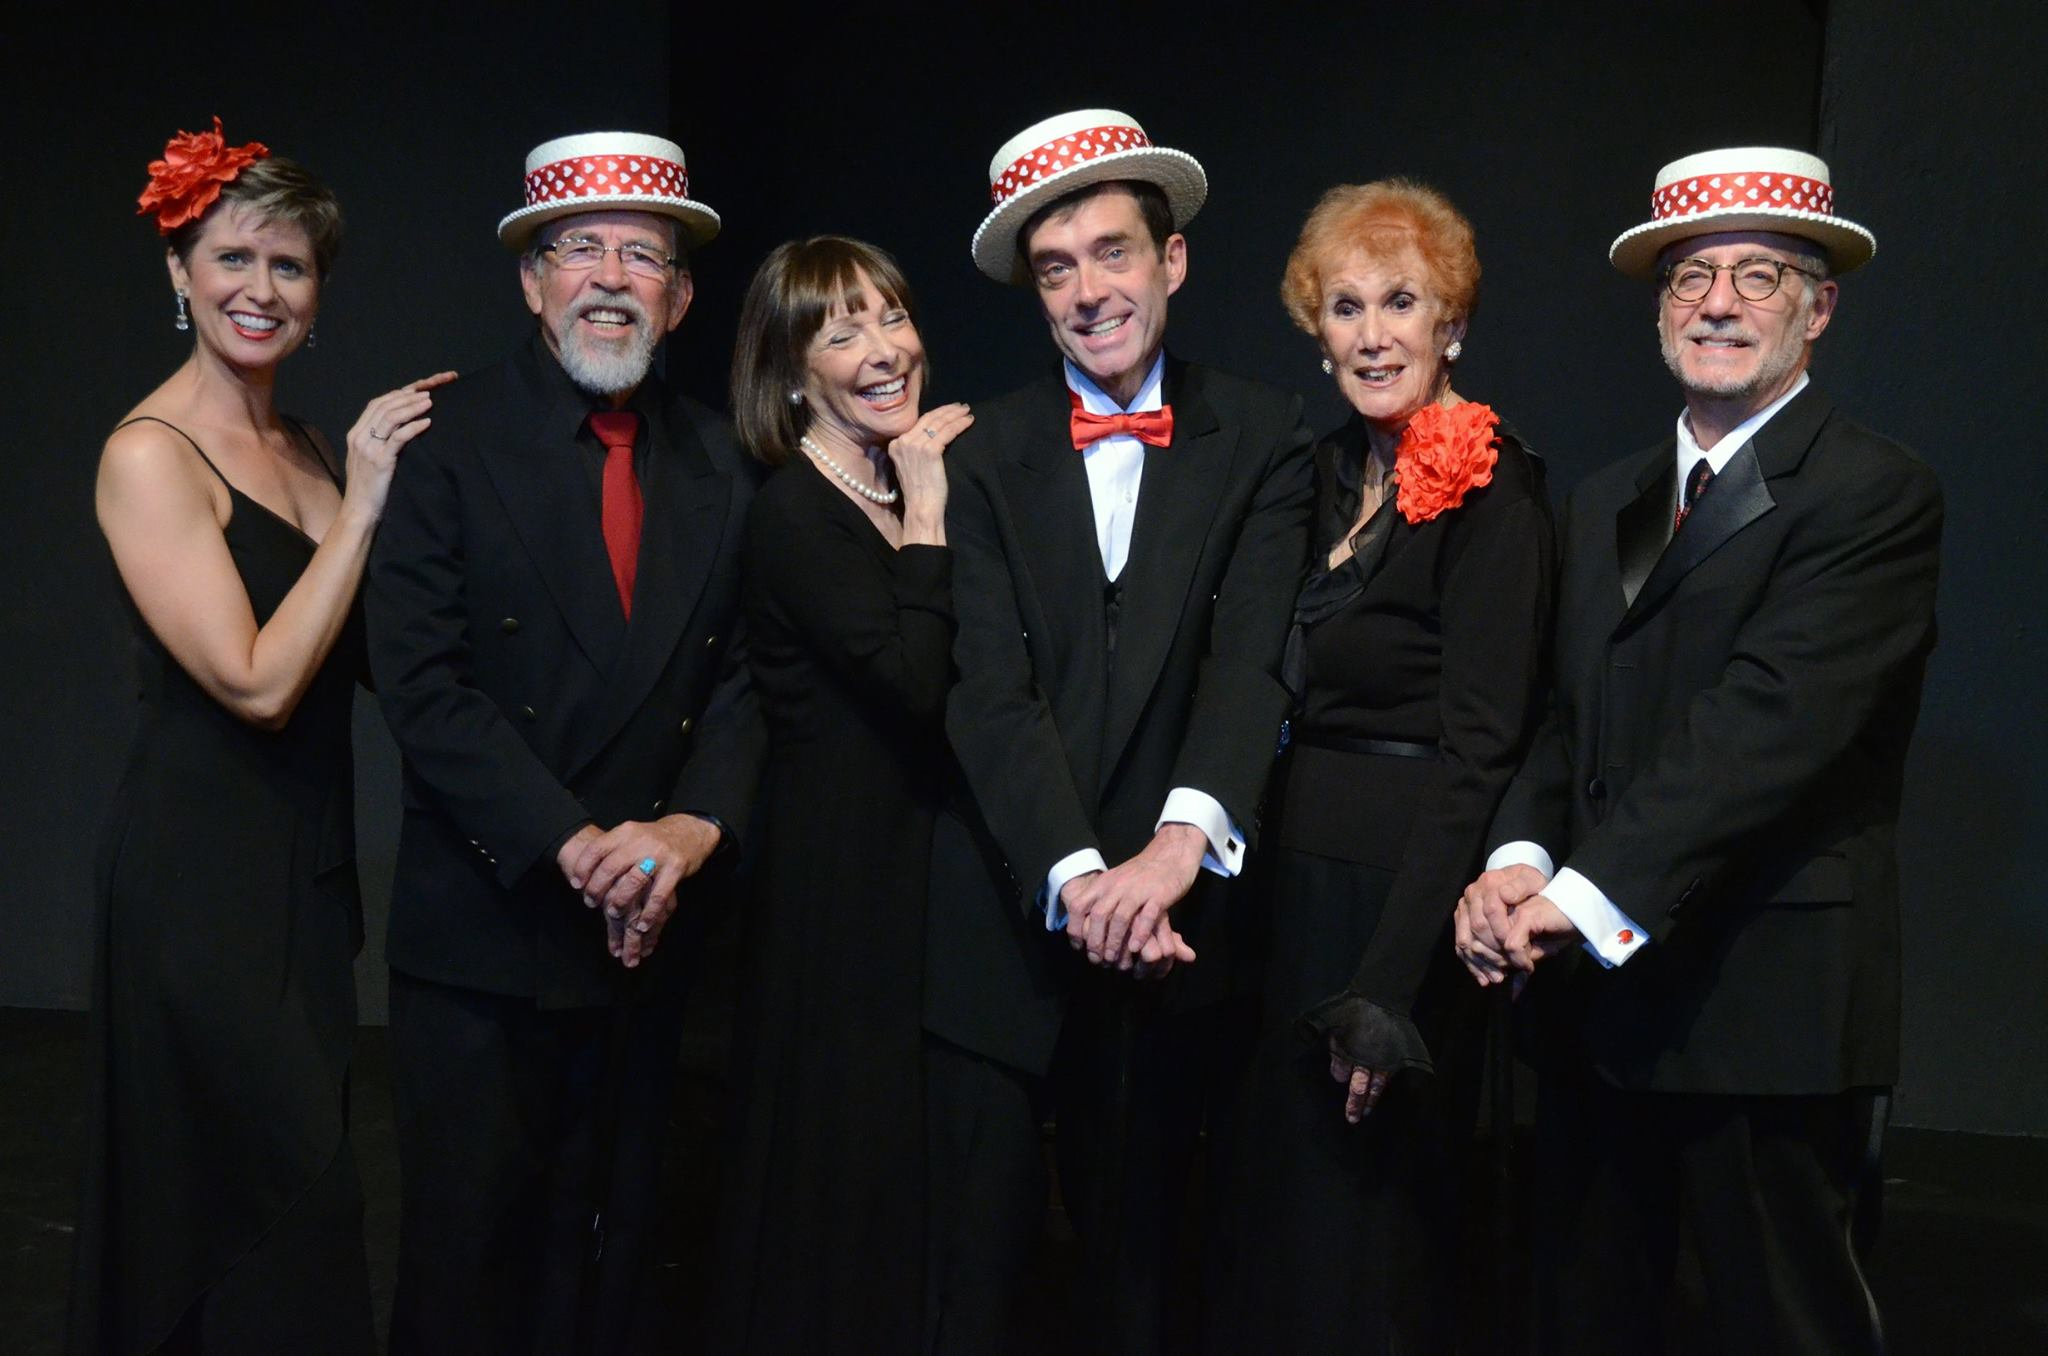 """The cast of """"Hart to Heart"""" at Theatre Artists Studio, 2014. (Photo by Mark Gluckman)"""